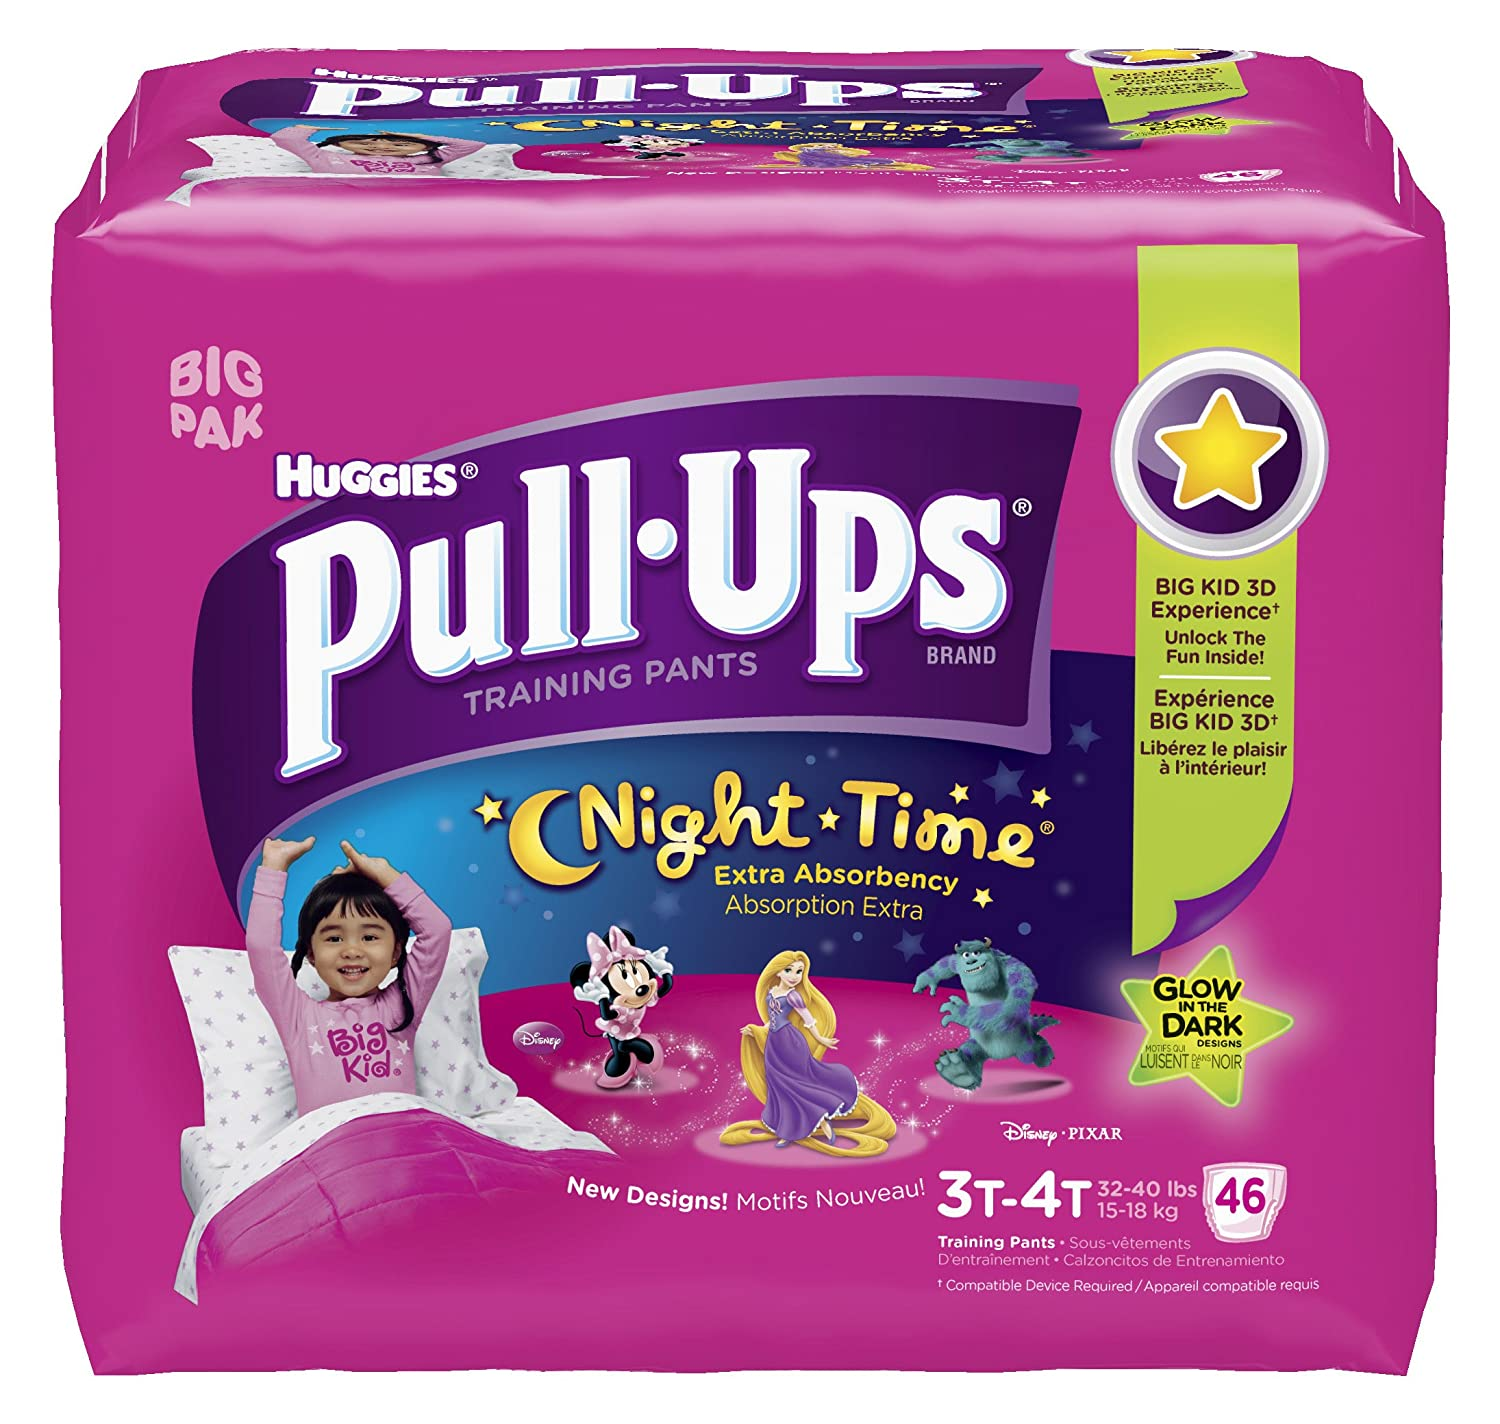 Amazon.com: Huggies Pull-Ups Night-time Training Pants, Size 3T - 4T, Girl,  46 Count (Pack of 2): Health & Personal Care